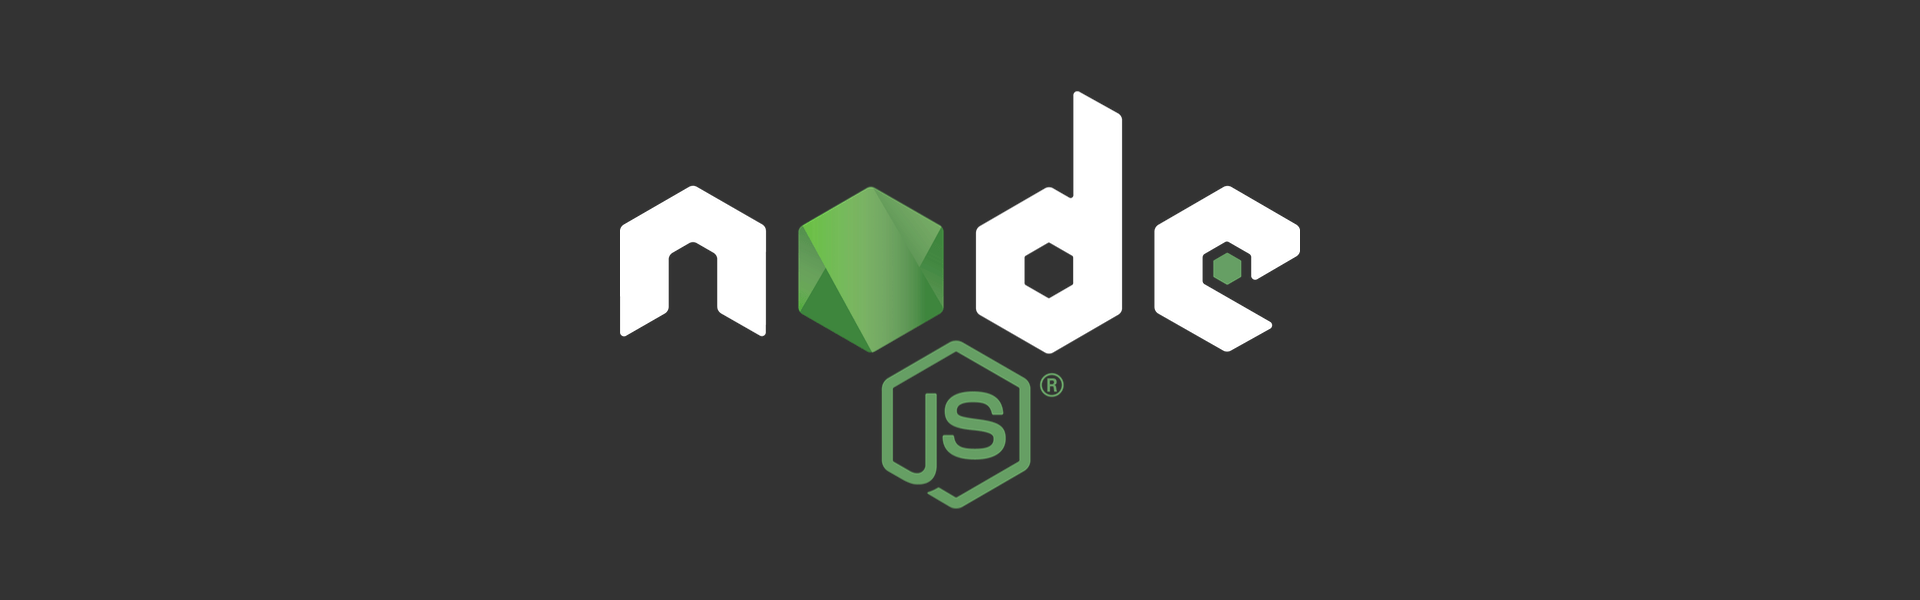 The Node.js logo